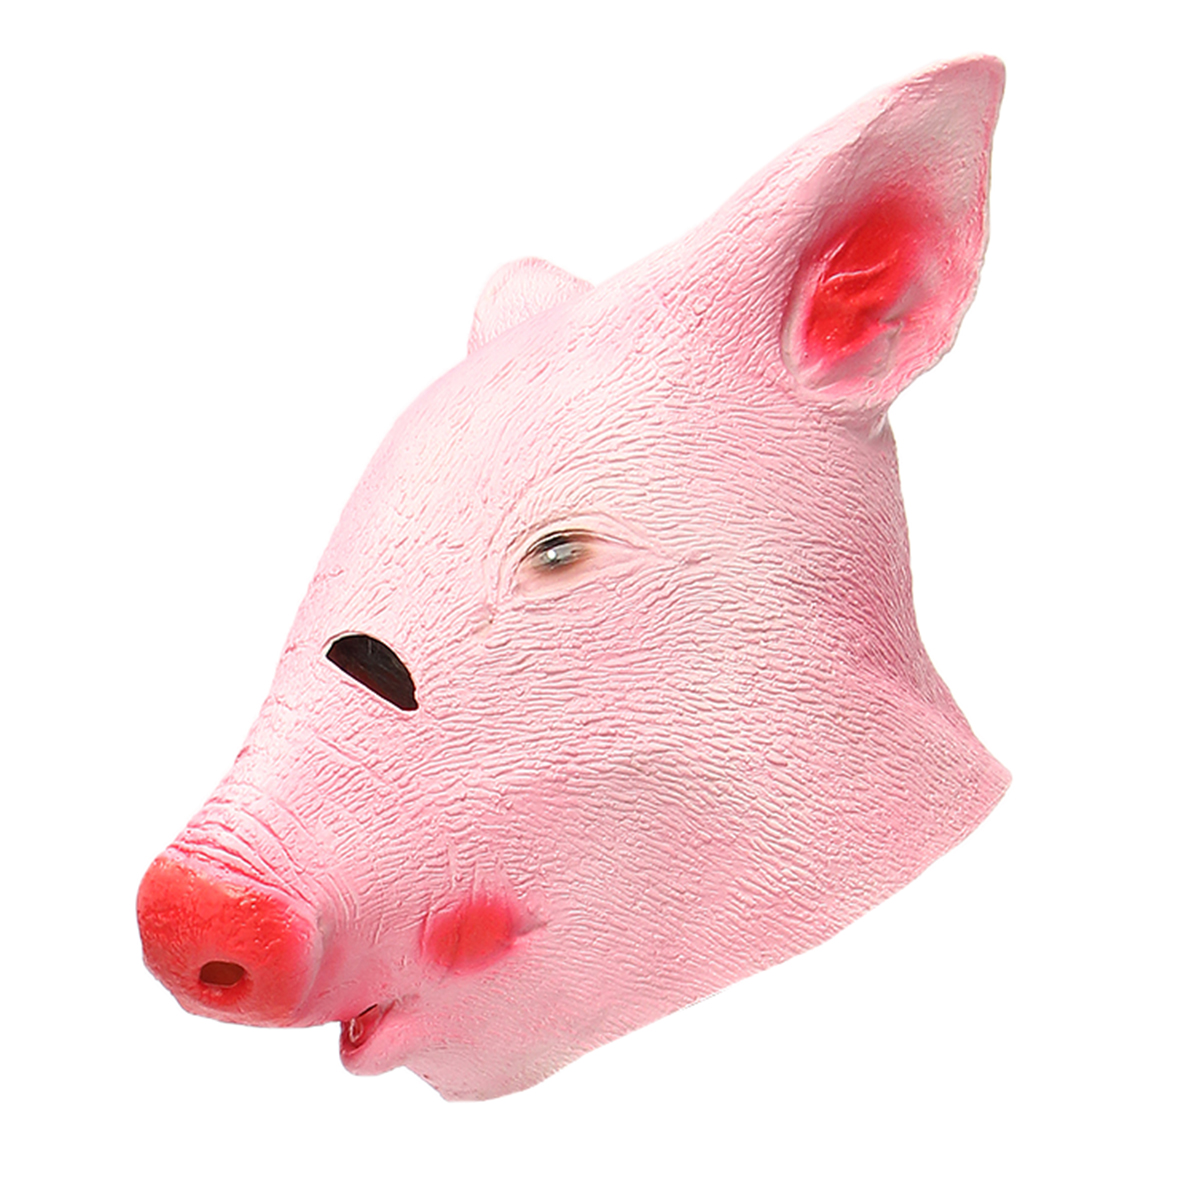 Funny Creepy Pig Head Mask Cosplay Animal Halloween Costume Comedy Theater Prop